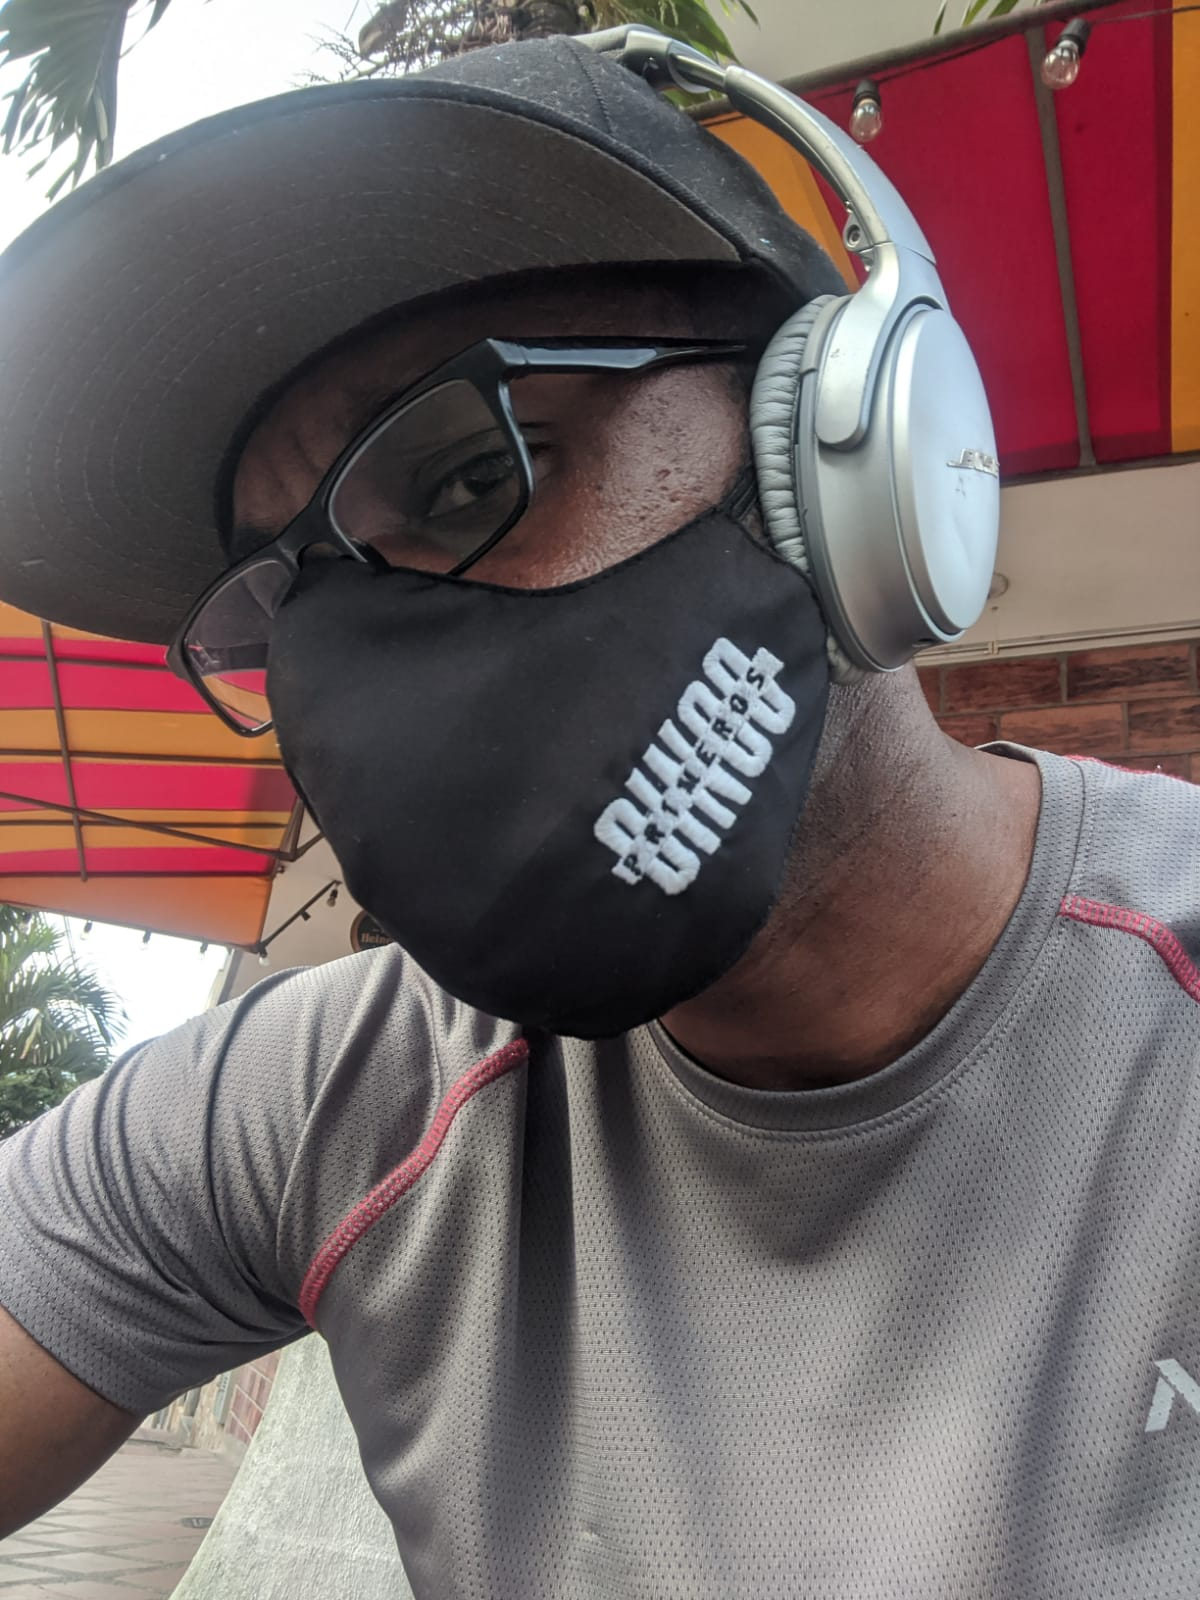 A picture of Lamon wearing a mask and large headphones in Medellin, Colombia